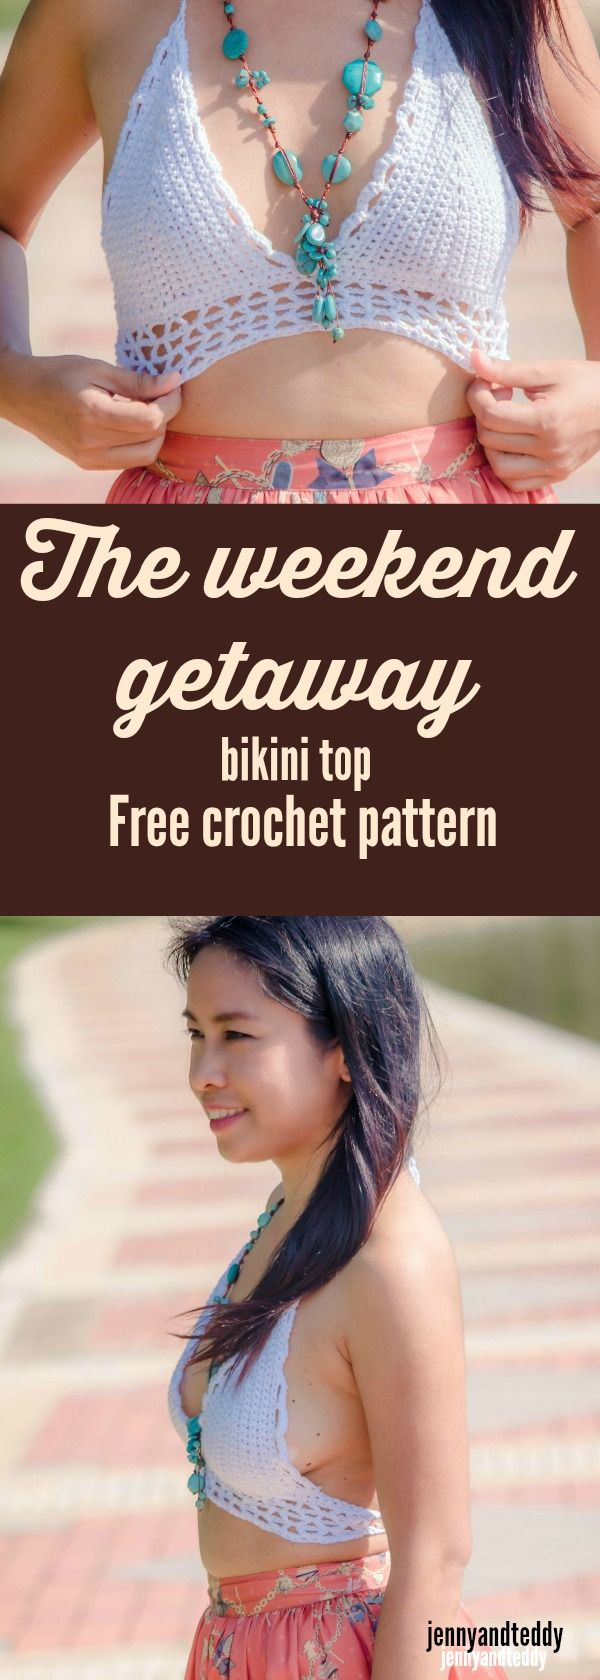 Free crochet bikini top pattern easy with photo tutorial and stitch chart by jennyandteddy